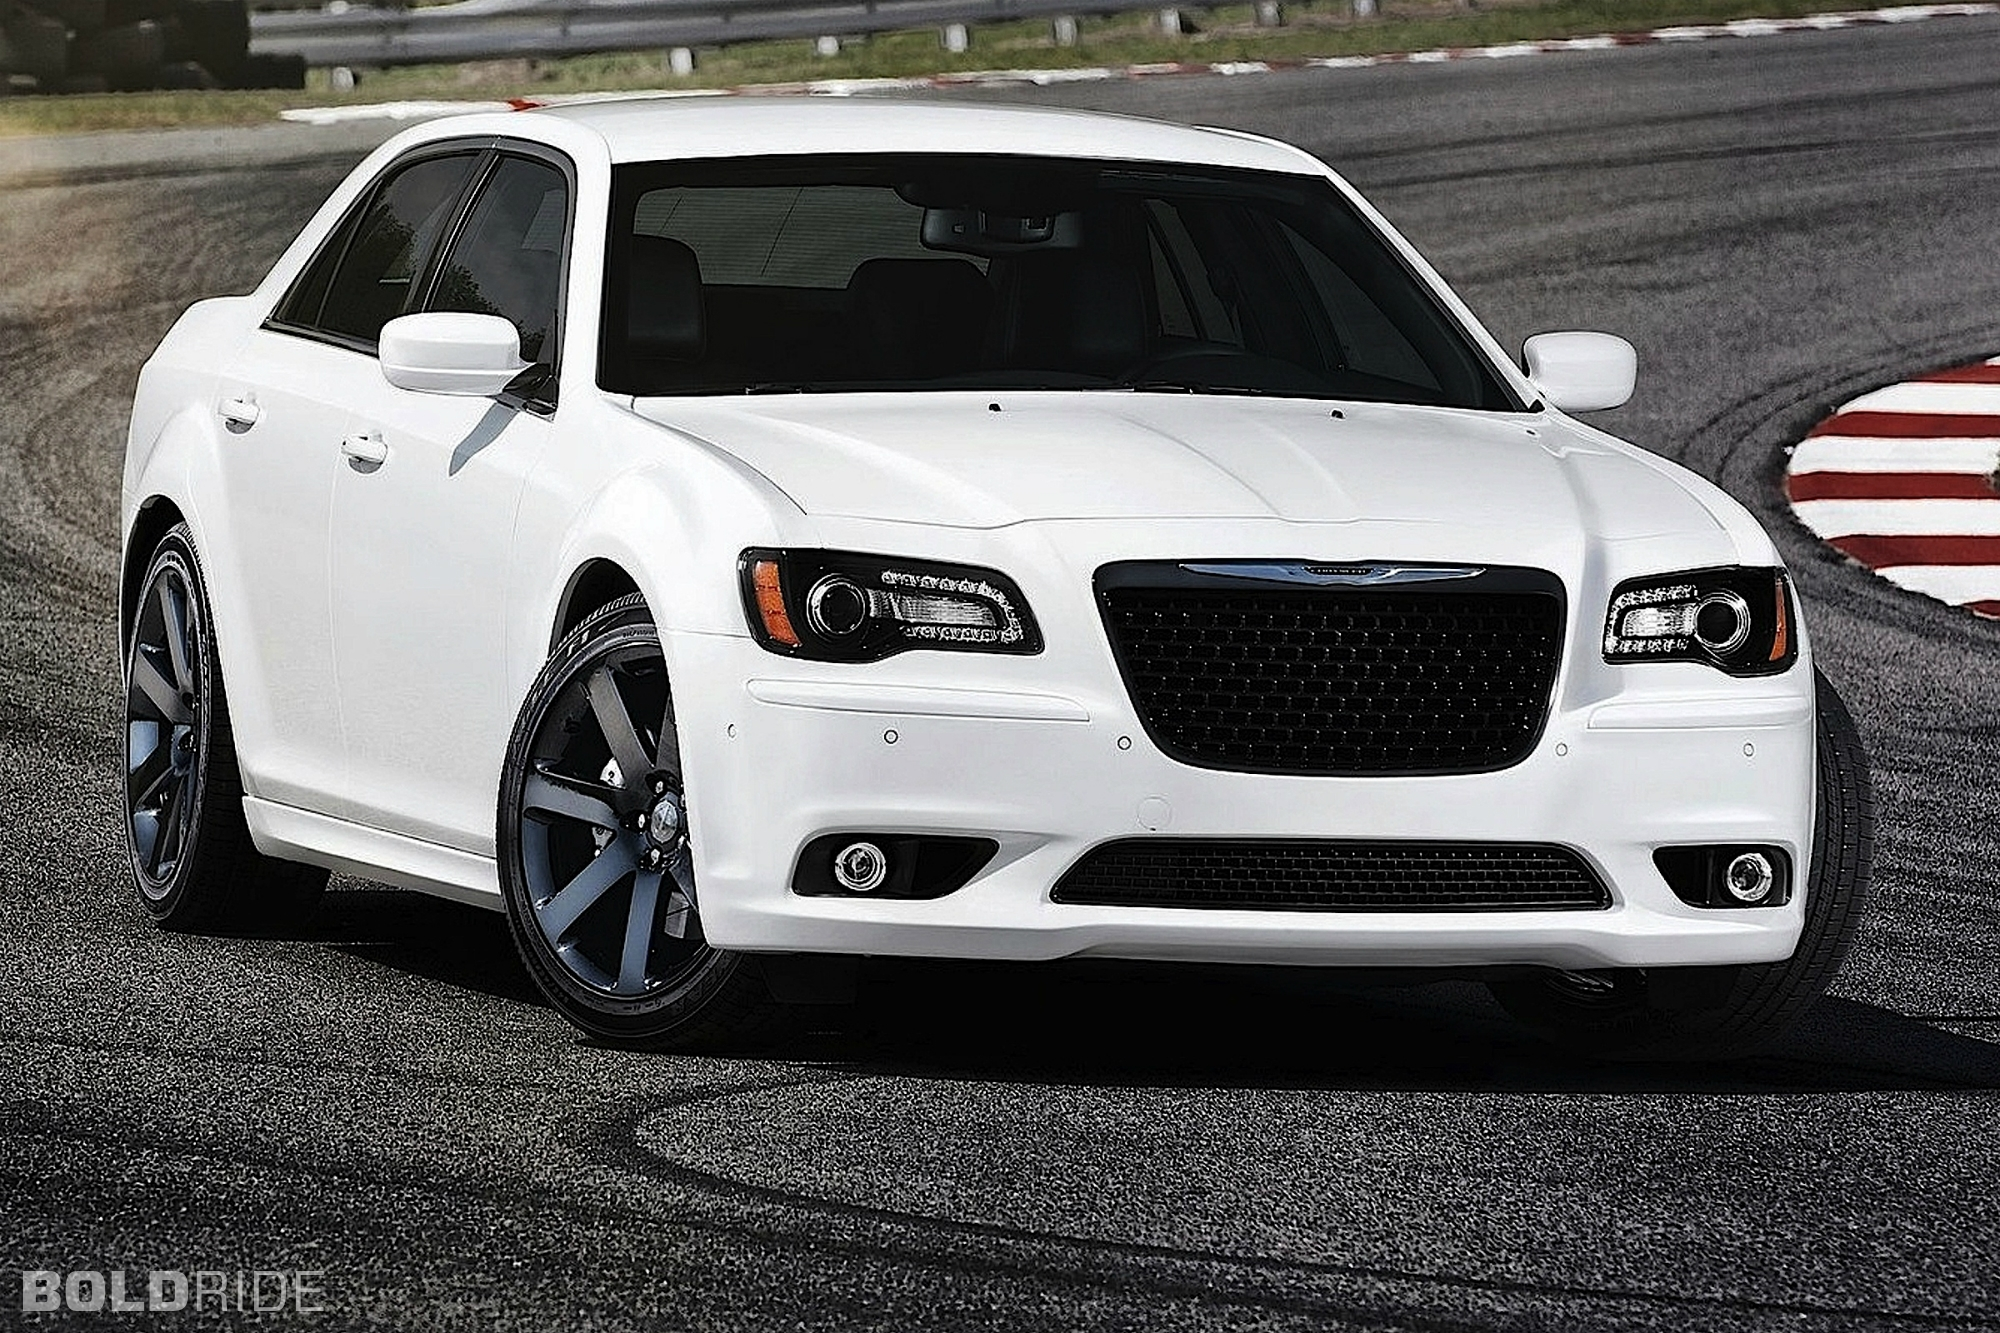 2012 Chrysler 300 SRT8 1600 x 1200